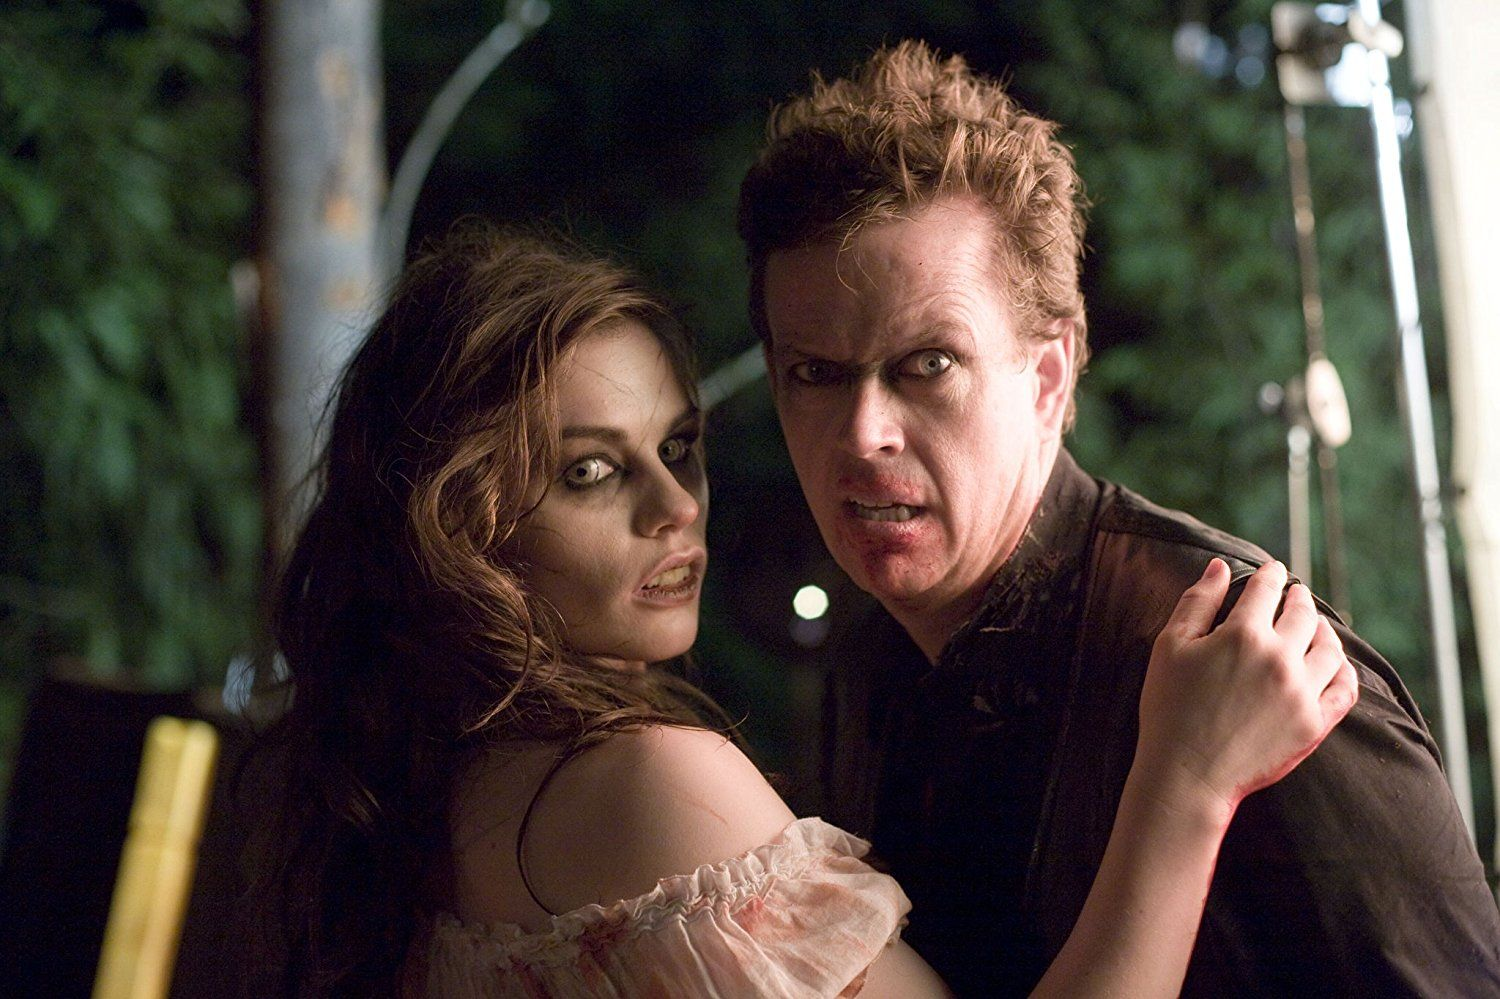 Anna Paquin and Dylan Baker in Trick 'r Treat (2007